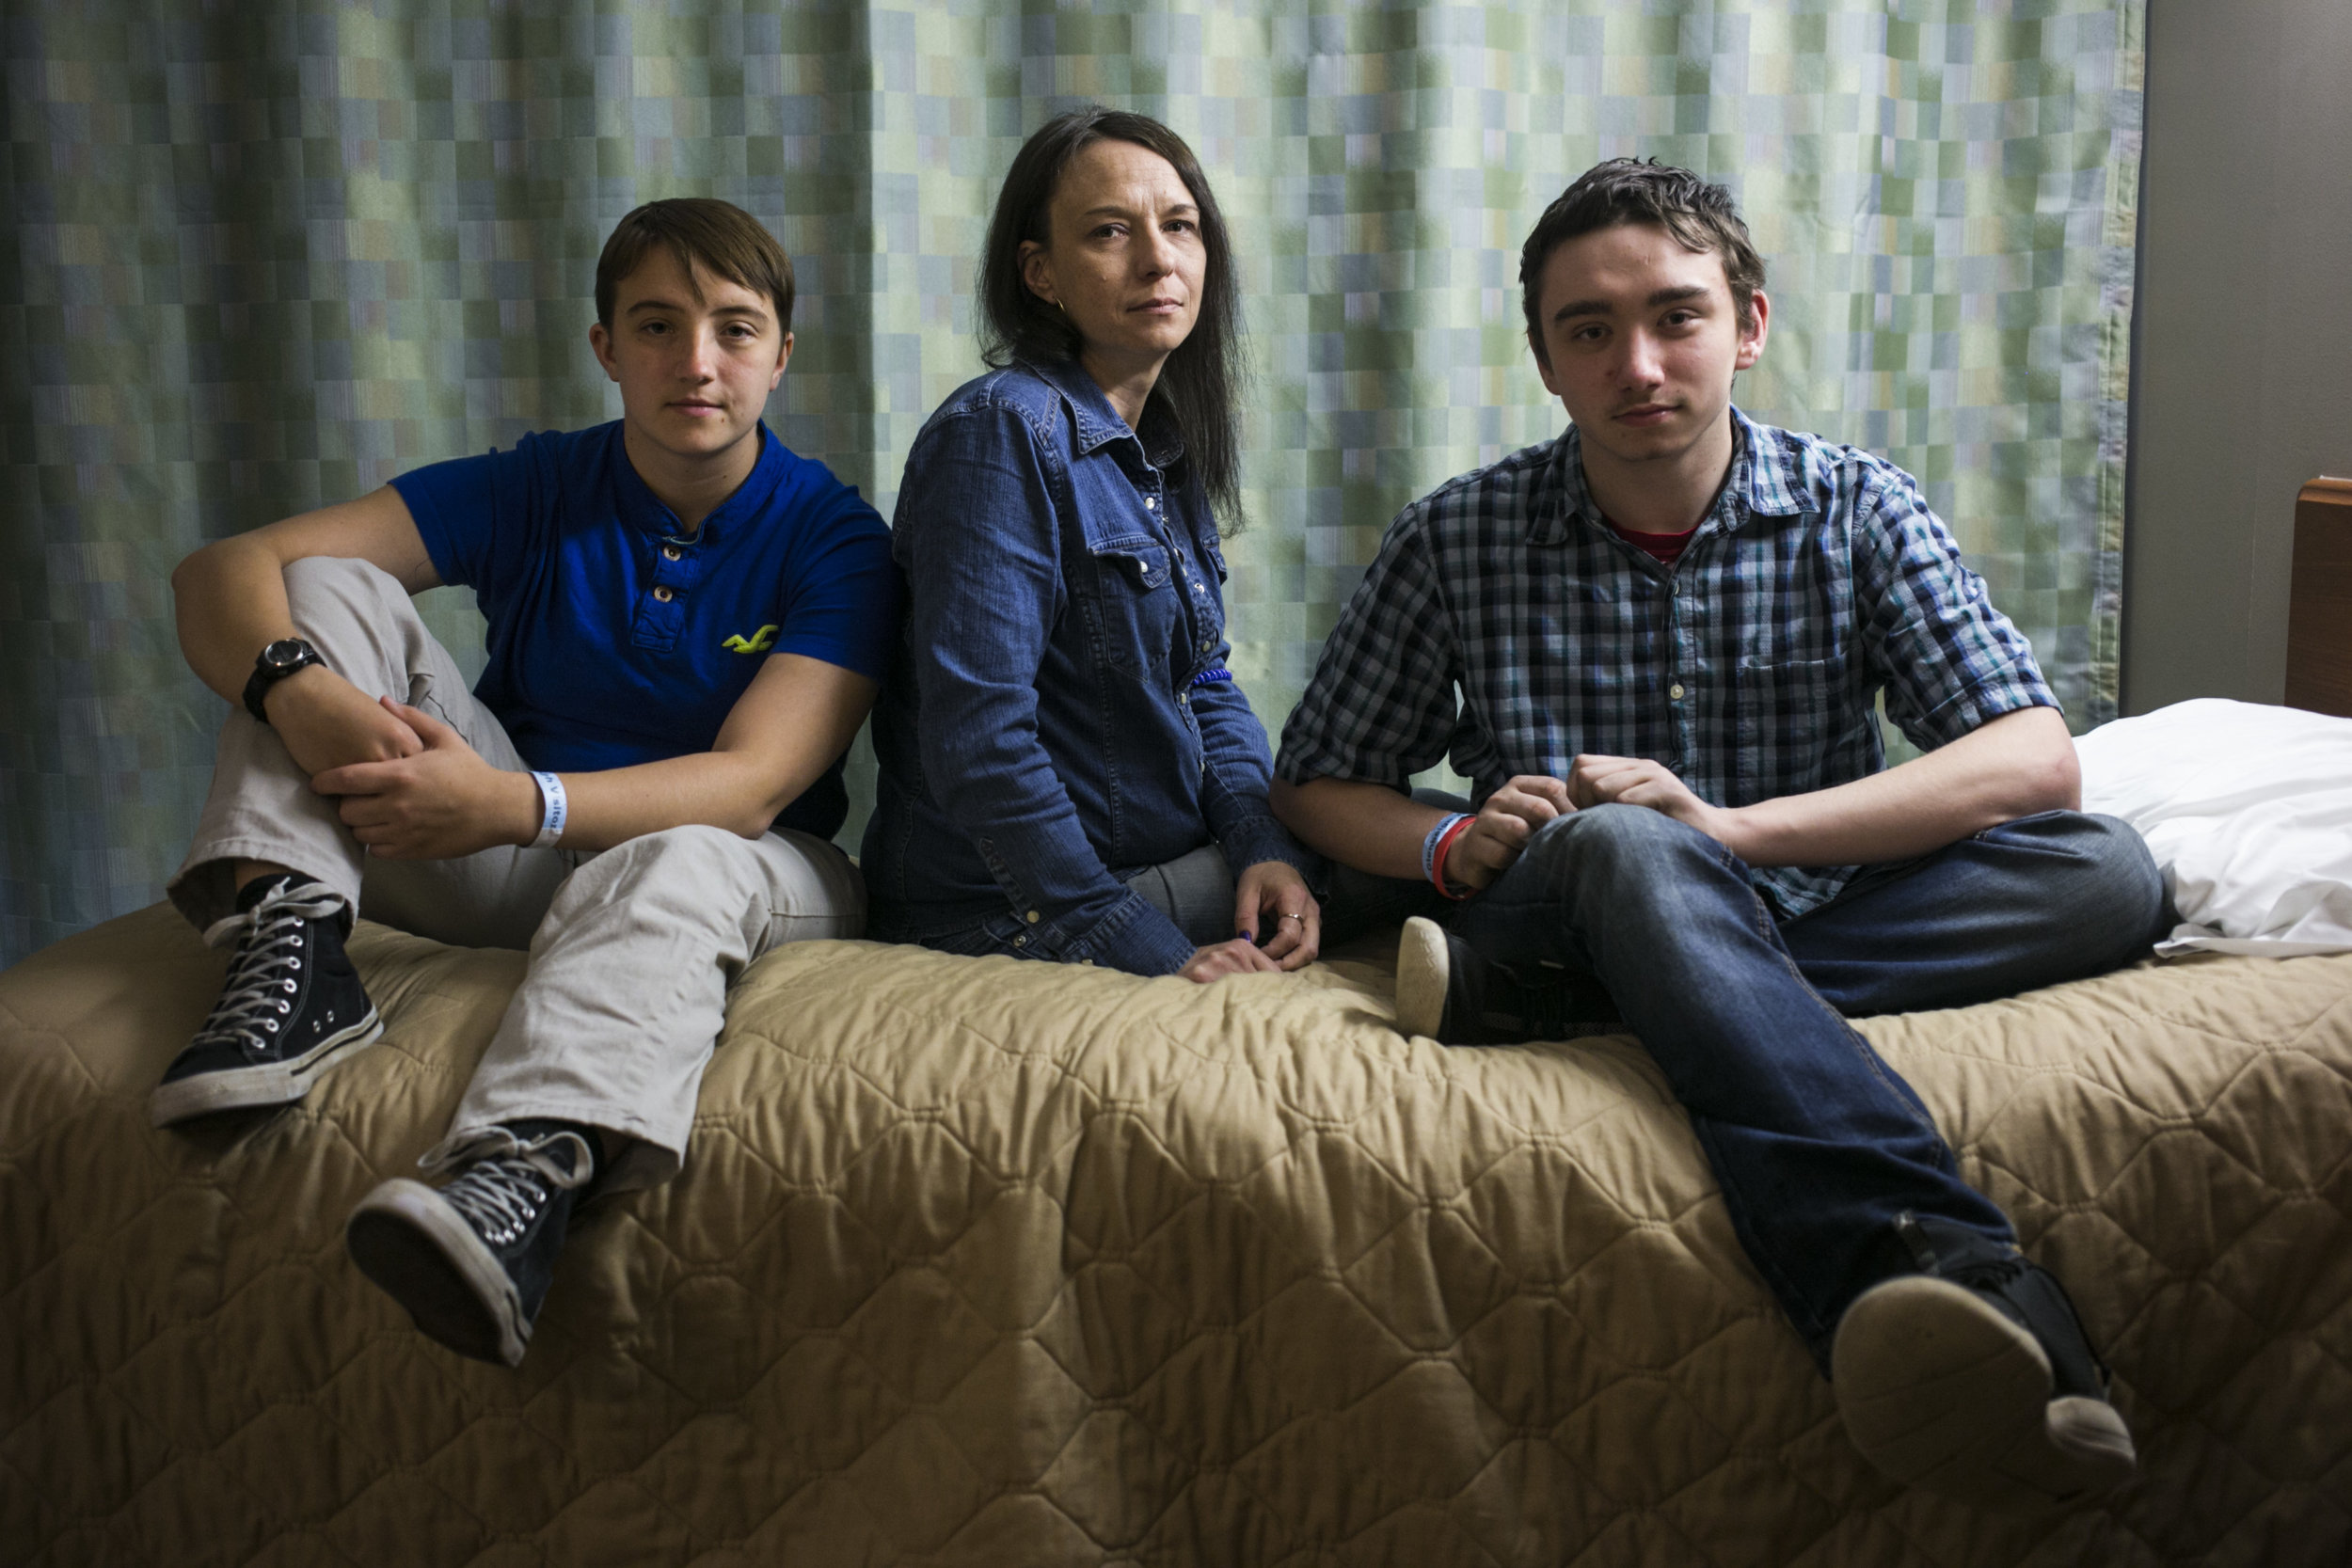 From left to right, Brianna Buie, 20, her mother Kelly McLaughlin, 41, and brother Matthew McLaughlin, 16, sit on the bed in the room where Kelly is seeking treatment at Glenbeigh, a rehabilitation center in Rock Creek, Ohio, on May 6, 2017. After a neck surgery that put Kelly on Vicodin, she became addicted to opioids and eventually heroine that left Matthew in the difficult position of self-managing his diabetes. Now, Kelly has hopes that the treatment will work despite previously failed detox experiences. For Mother Jones.